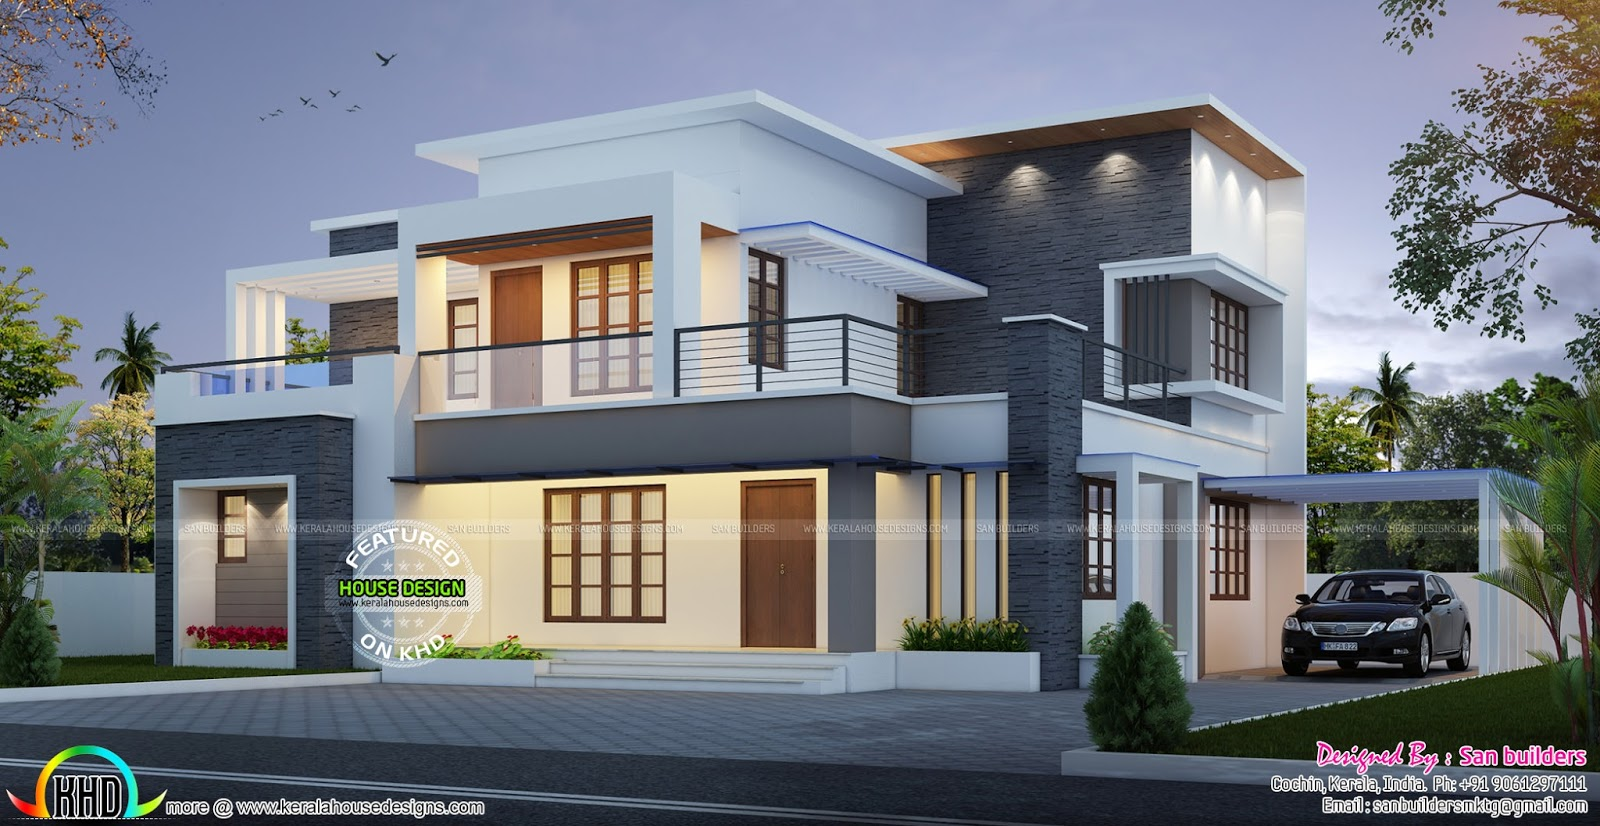 House plan and elevation by san builders kerala home for House elevation models